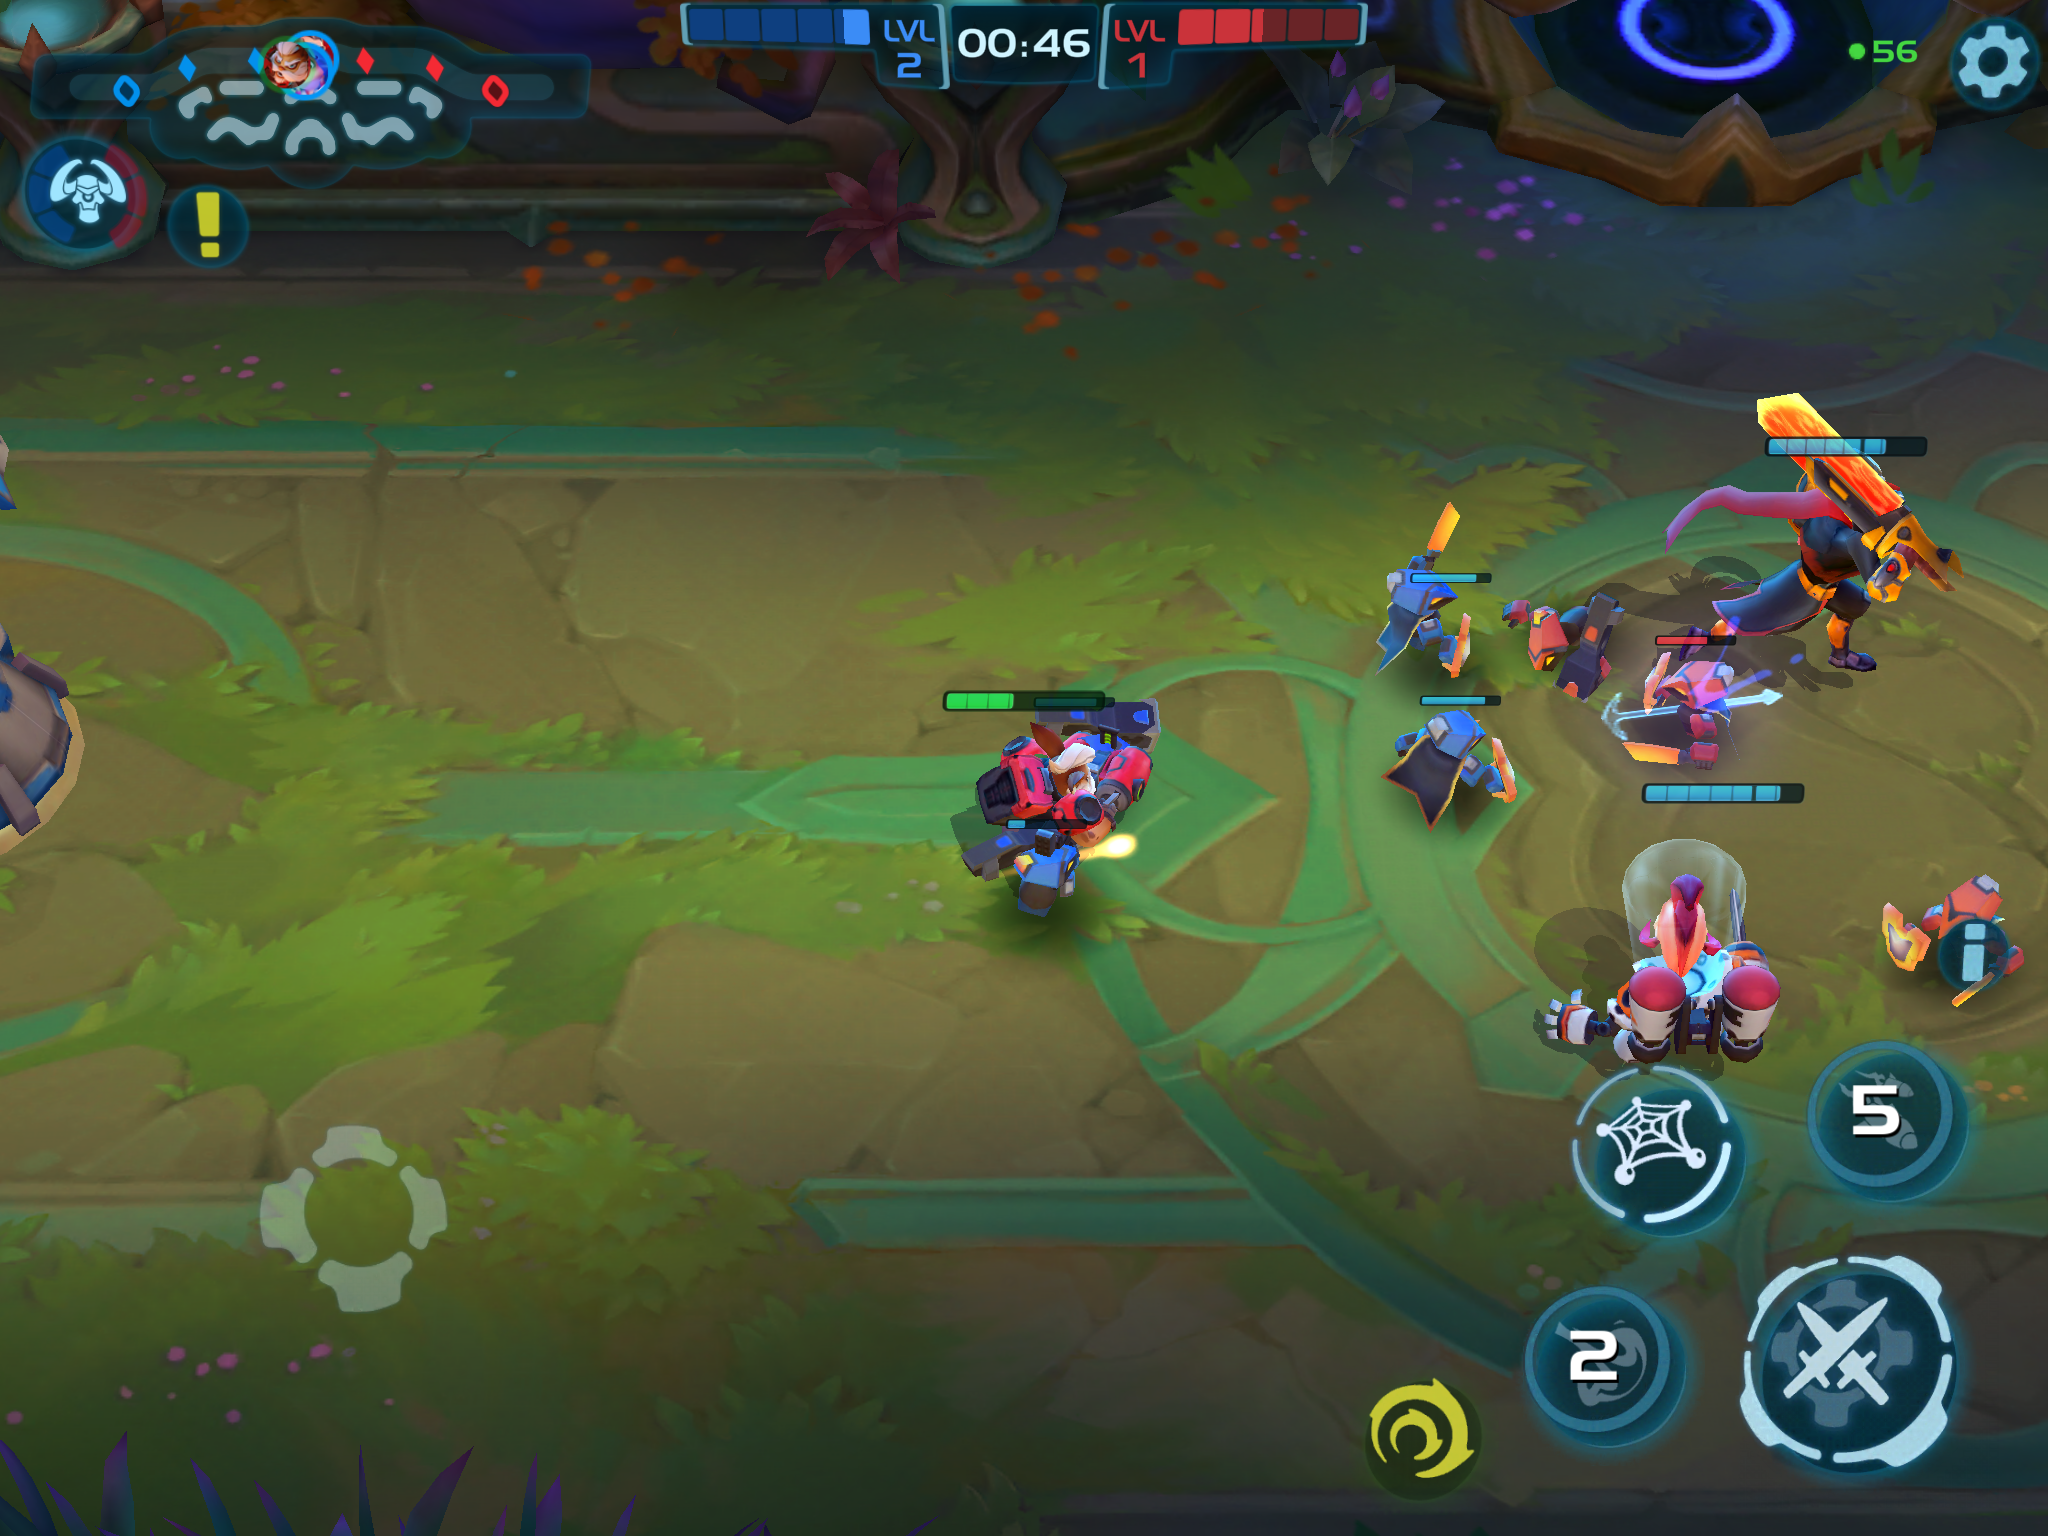 Planet of Heroes review - Can a MOBA go casual?